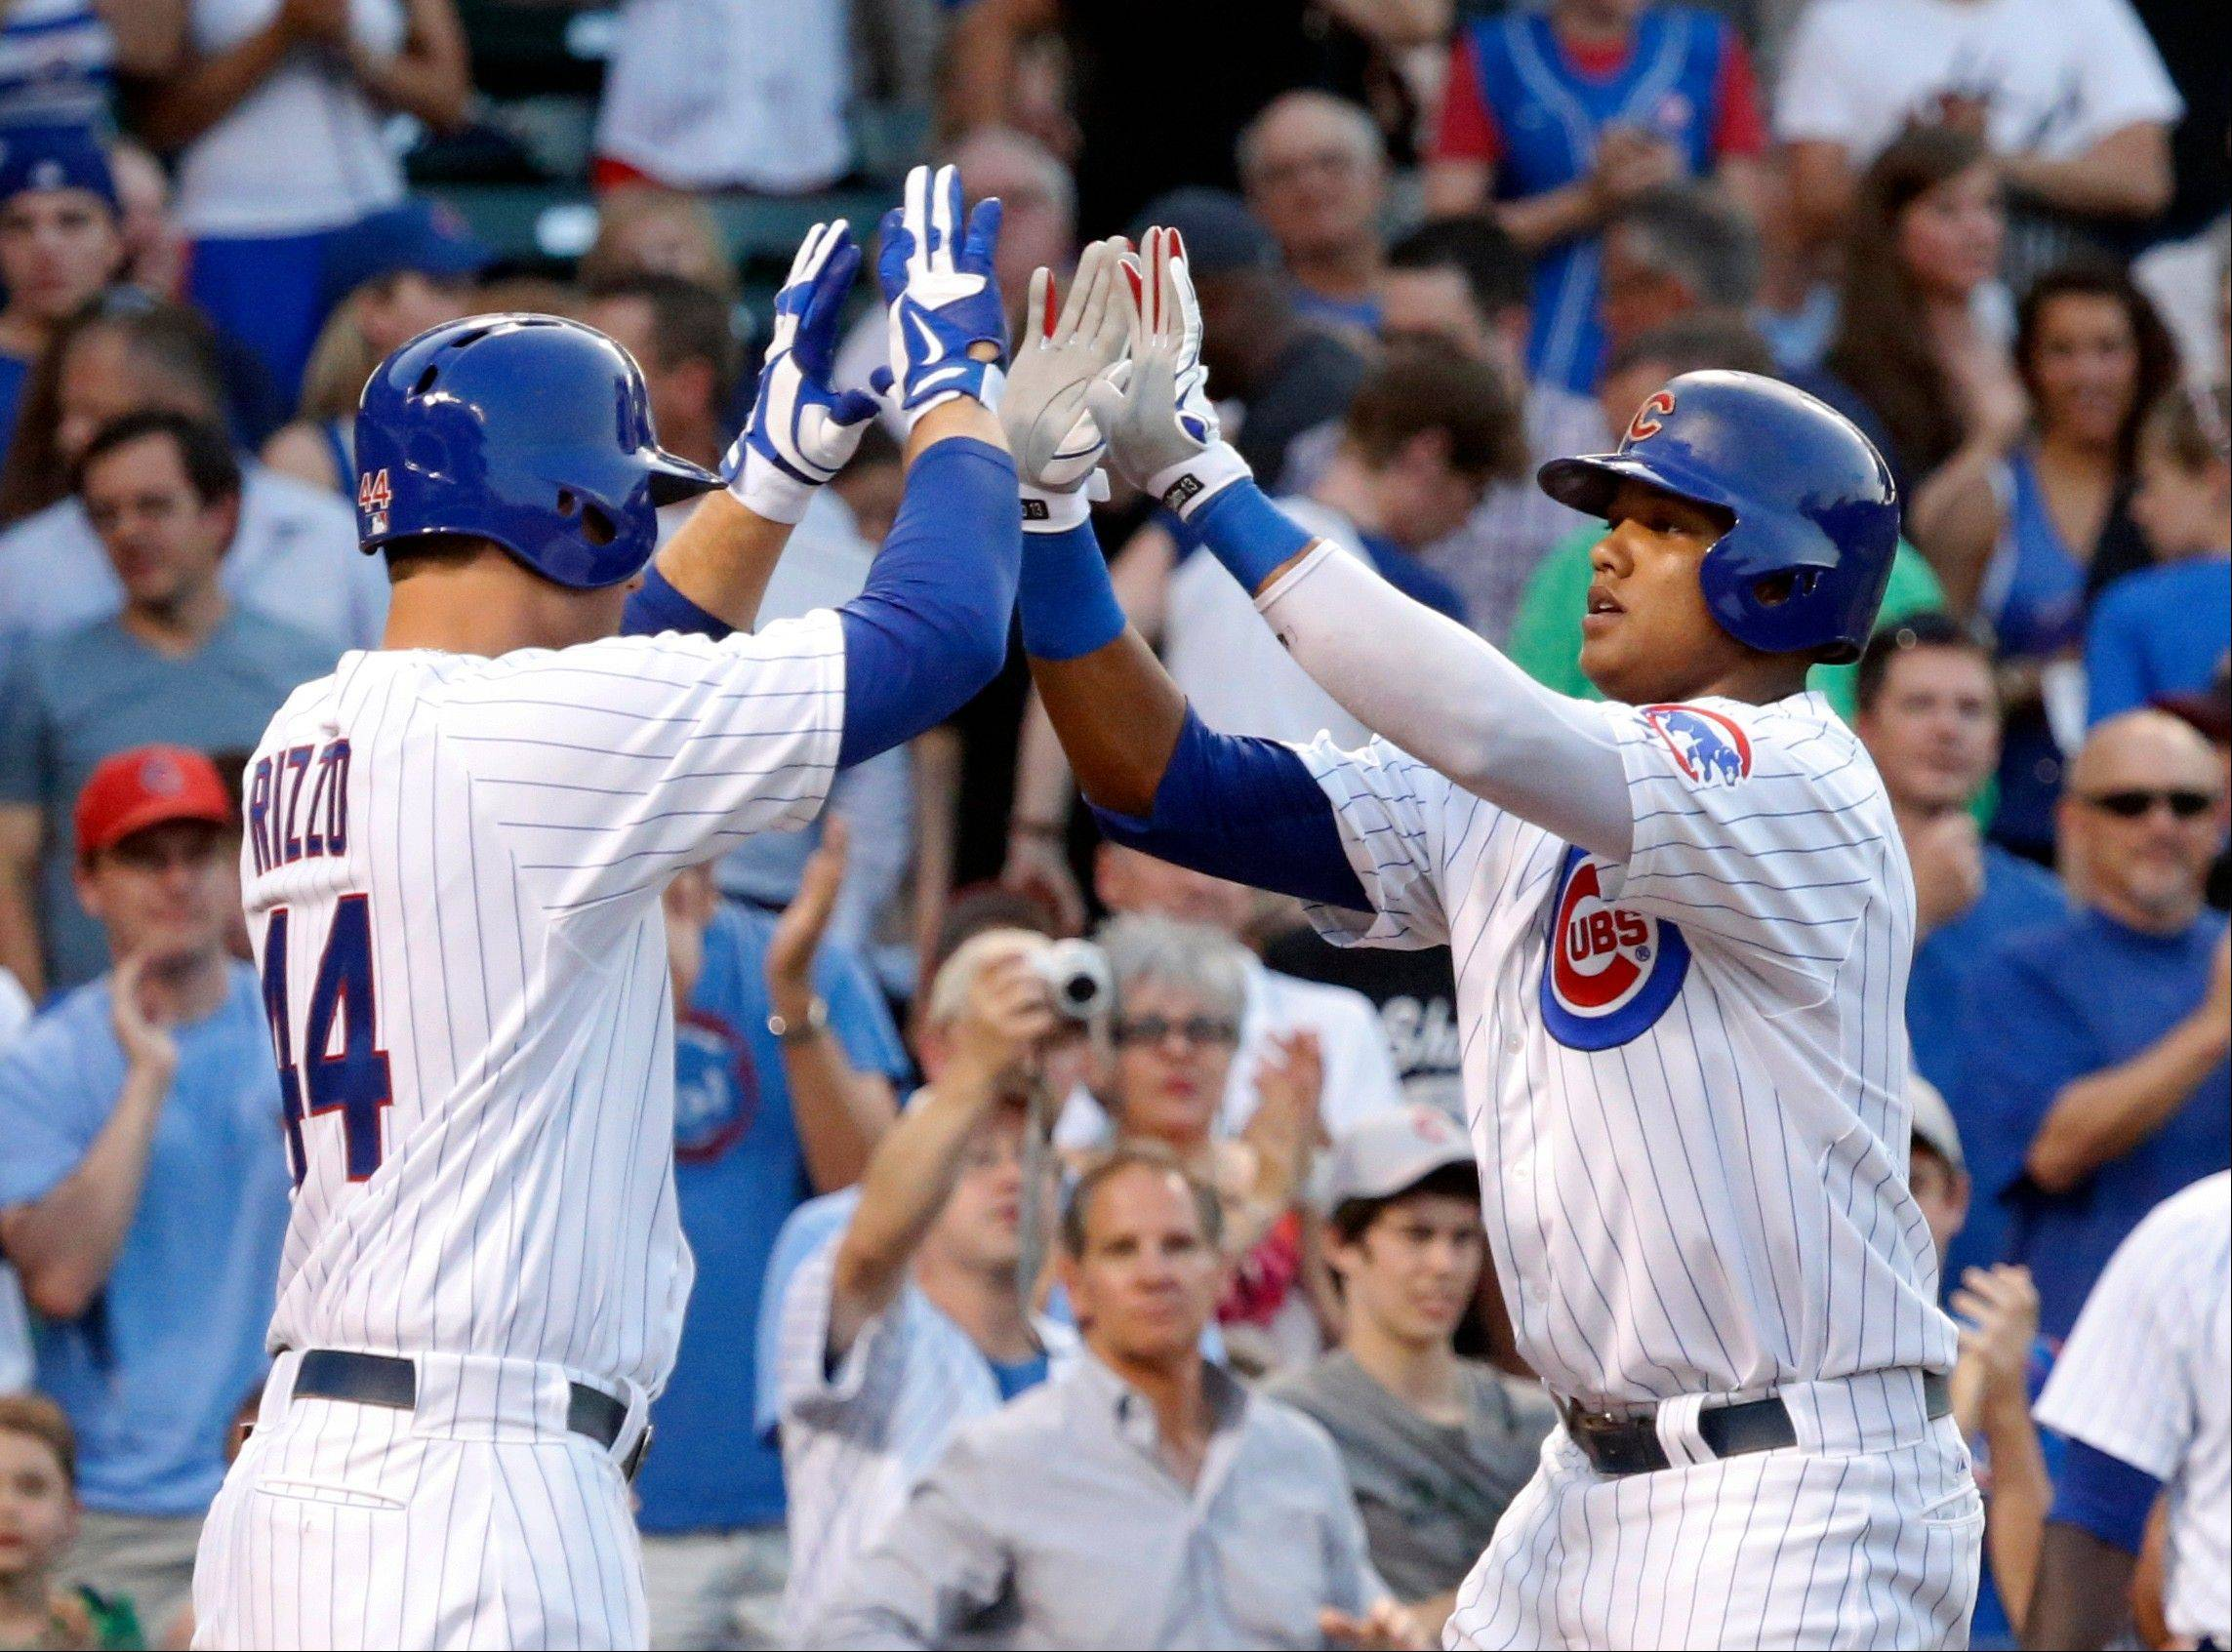 Cubs manager Dale Sveum thinks Cubs core players Anthony Rizzo, left, and Starlin Castro �are ready to really produce in the second half.�